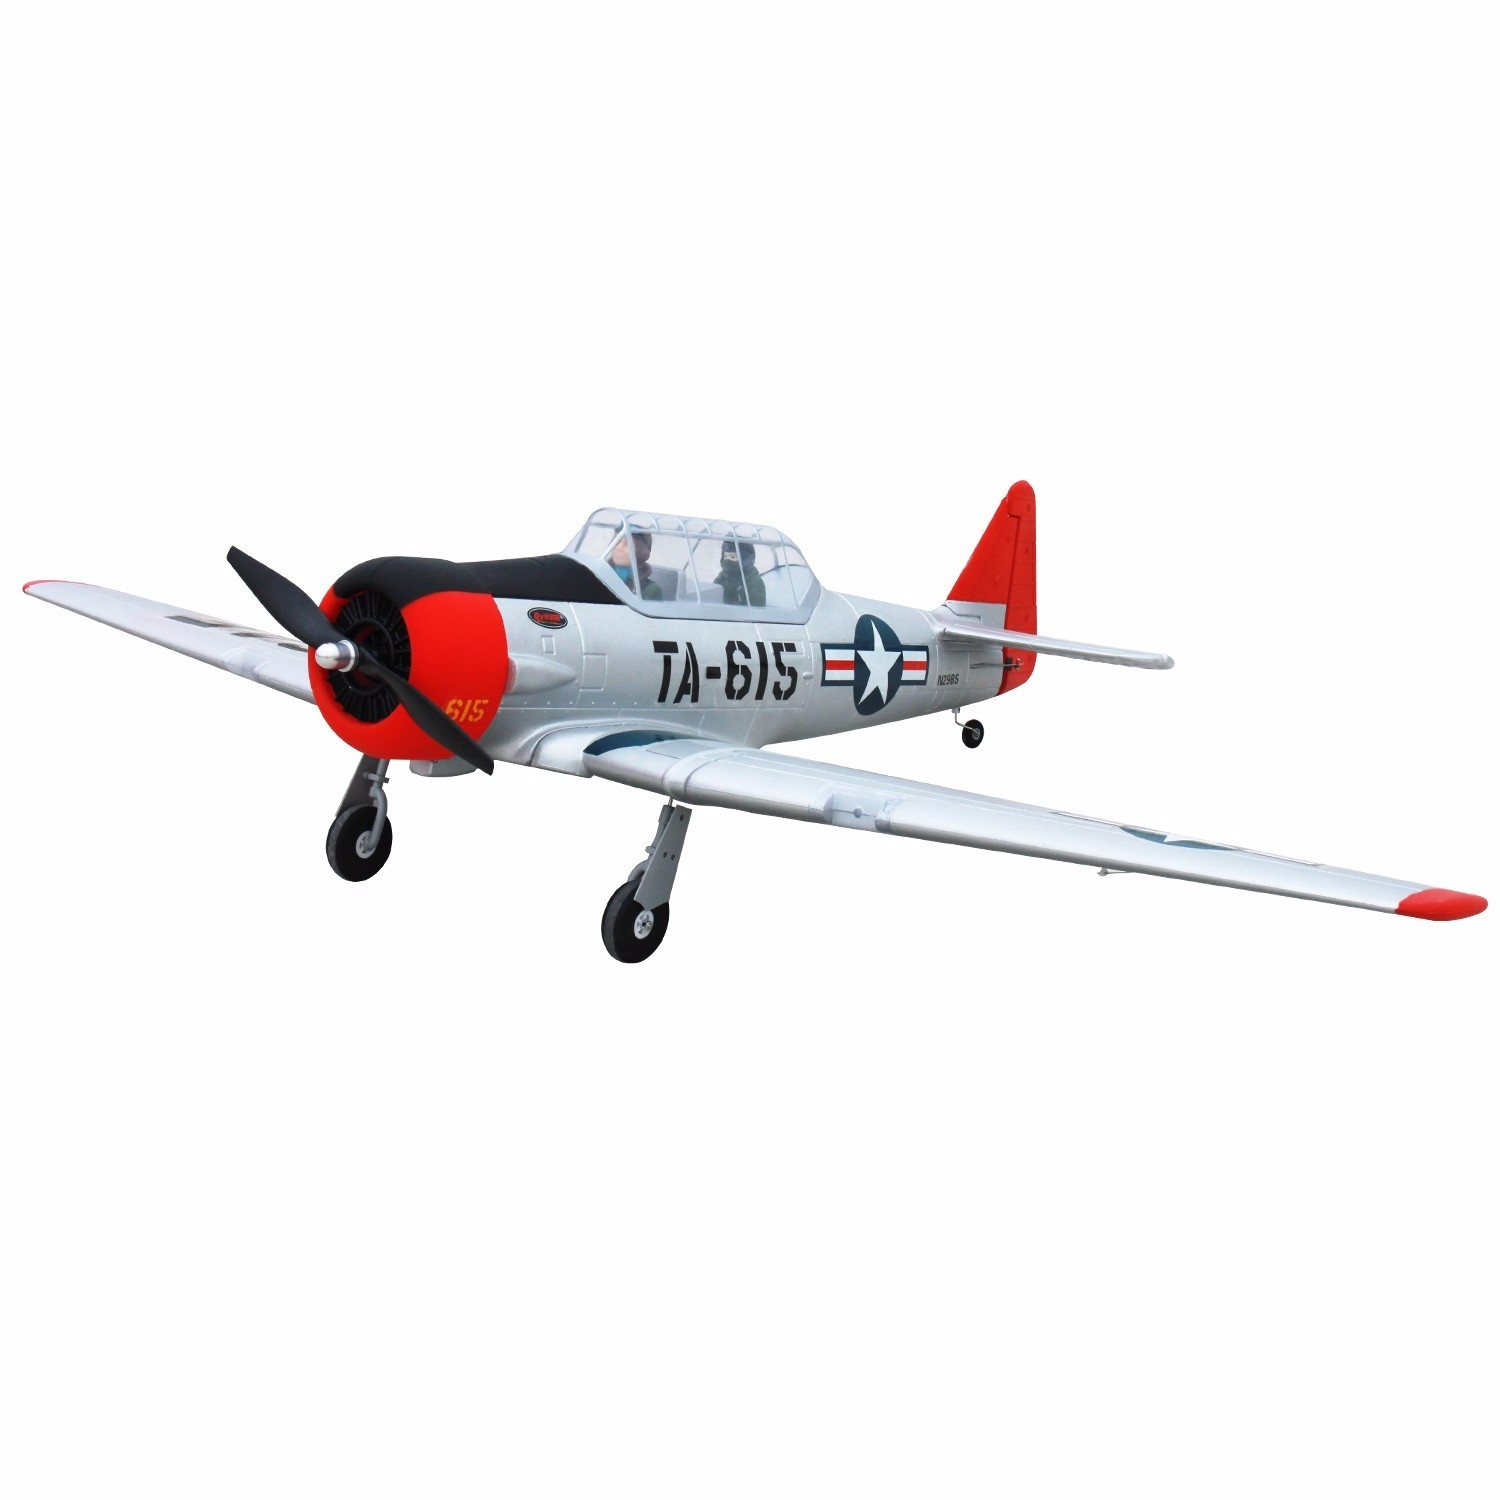 Dynam AT-6 Texan 1370mm Wingspan EPO Warbird RC Airplane PNP